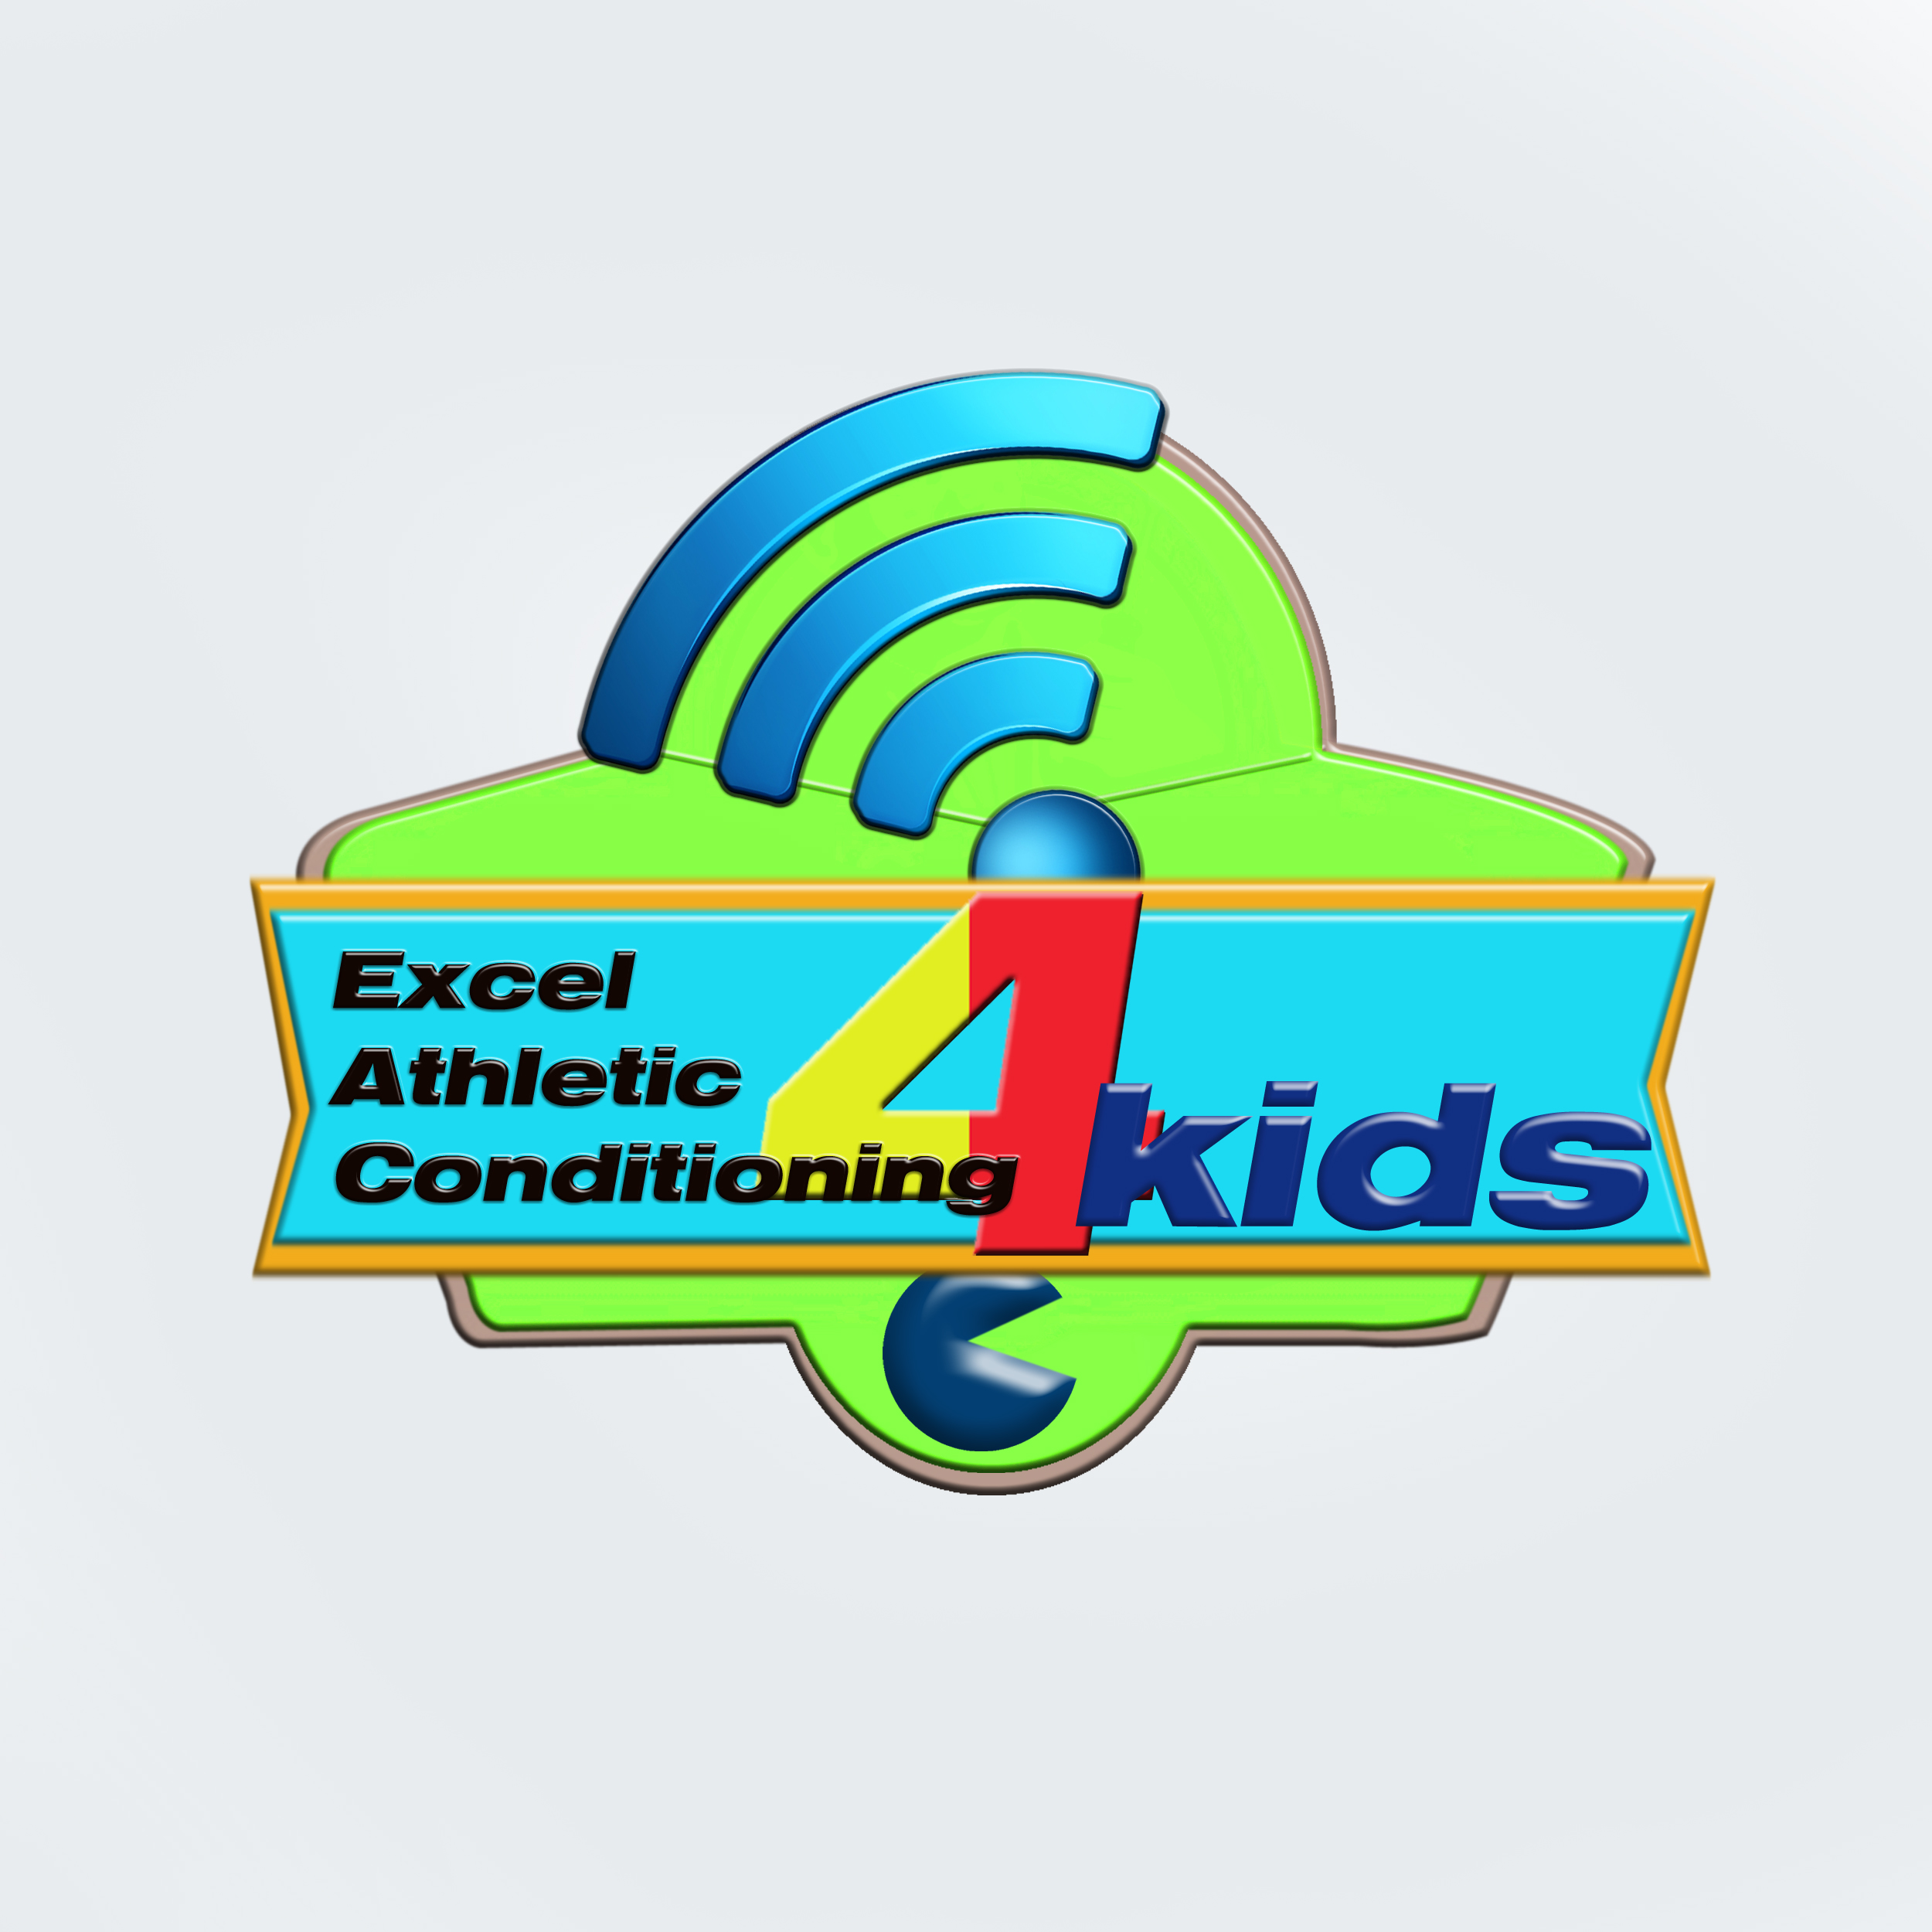 Logo Design by Roberto Sibbaluca - Entry No. 11 in the Logo Design Contest Artistic Logo Design for Excel Athletic Conditioning 4 kids.